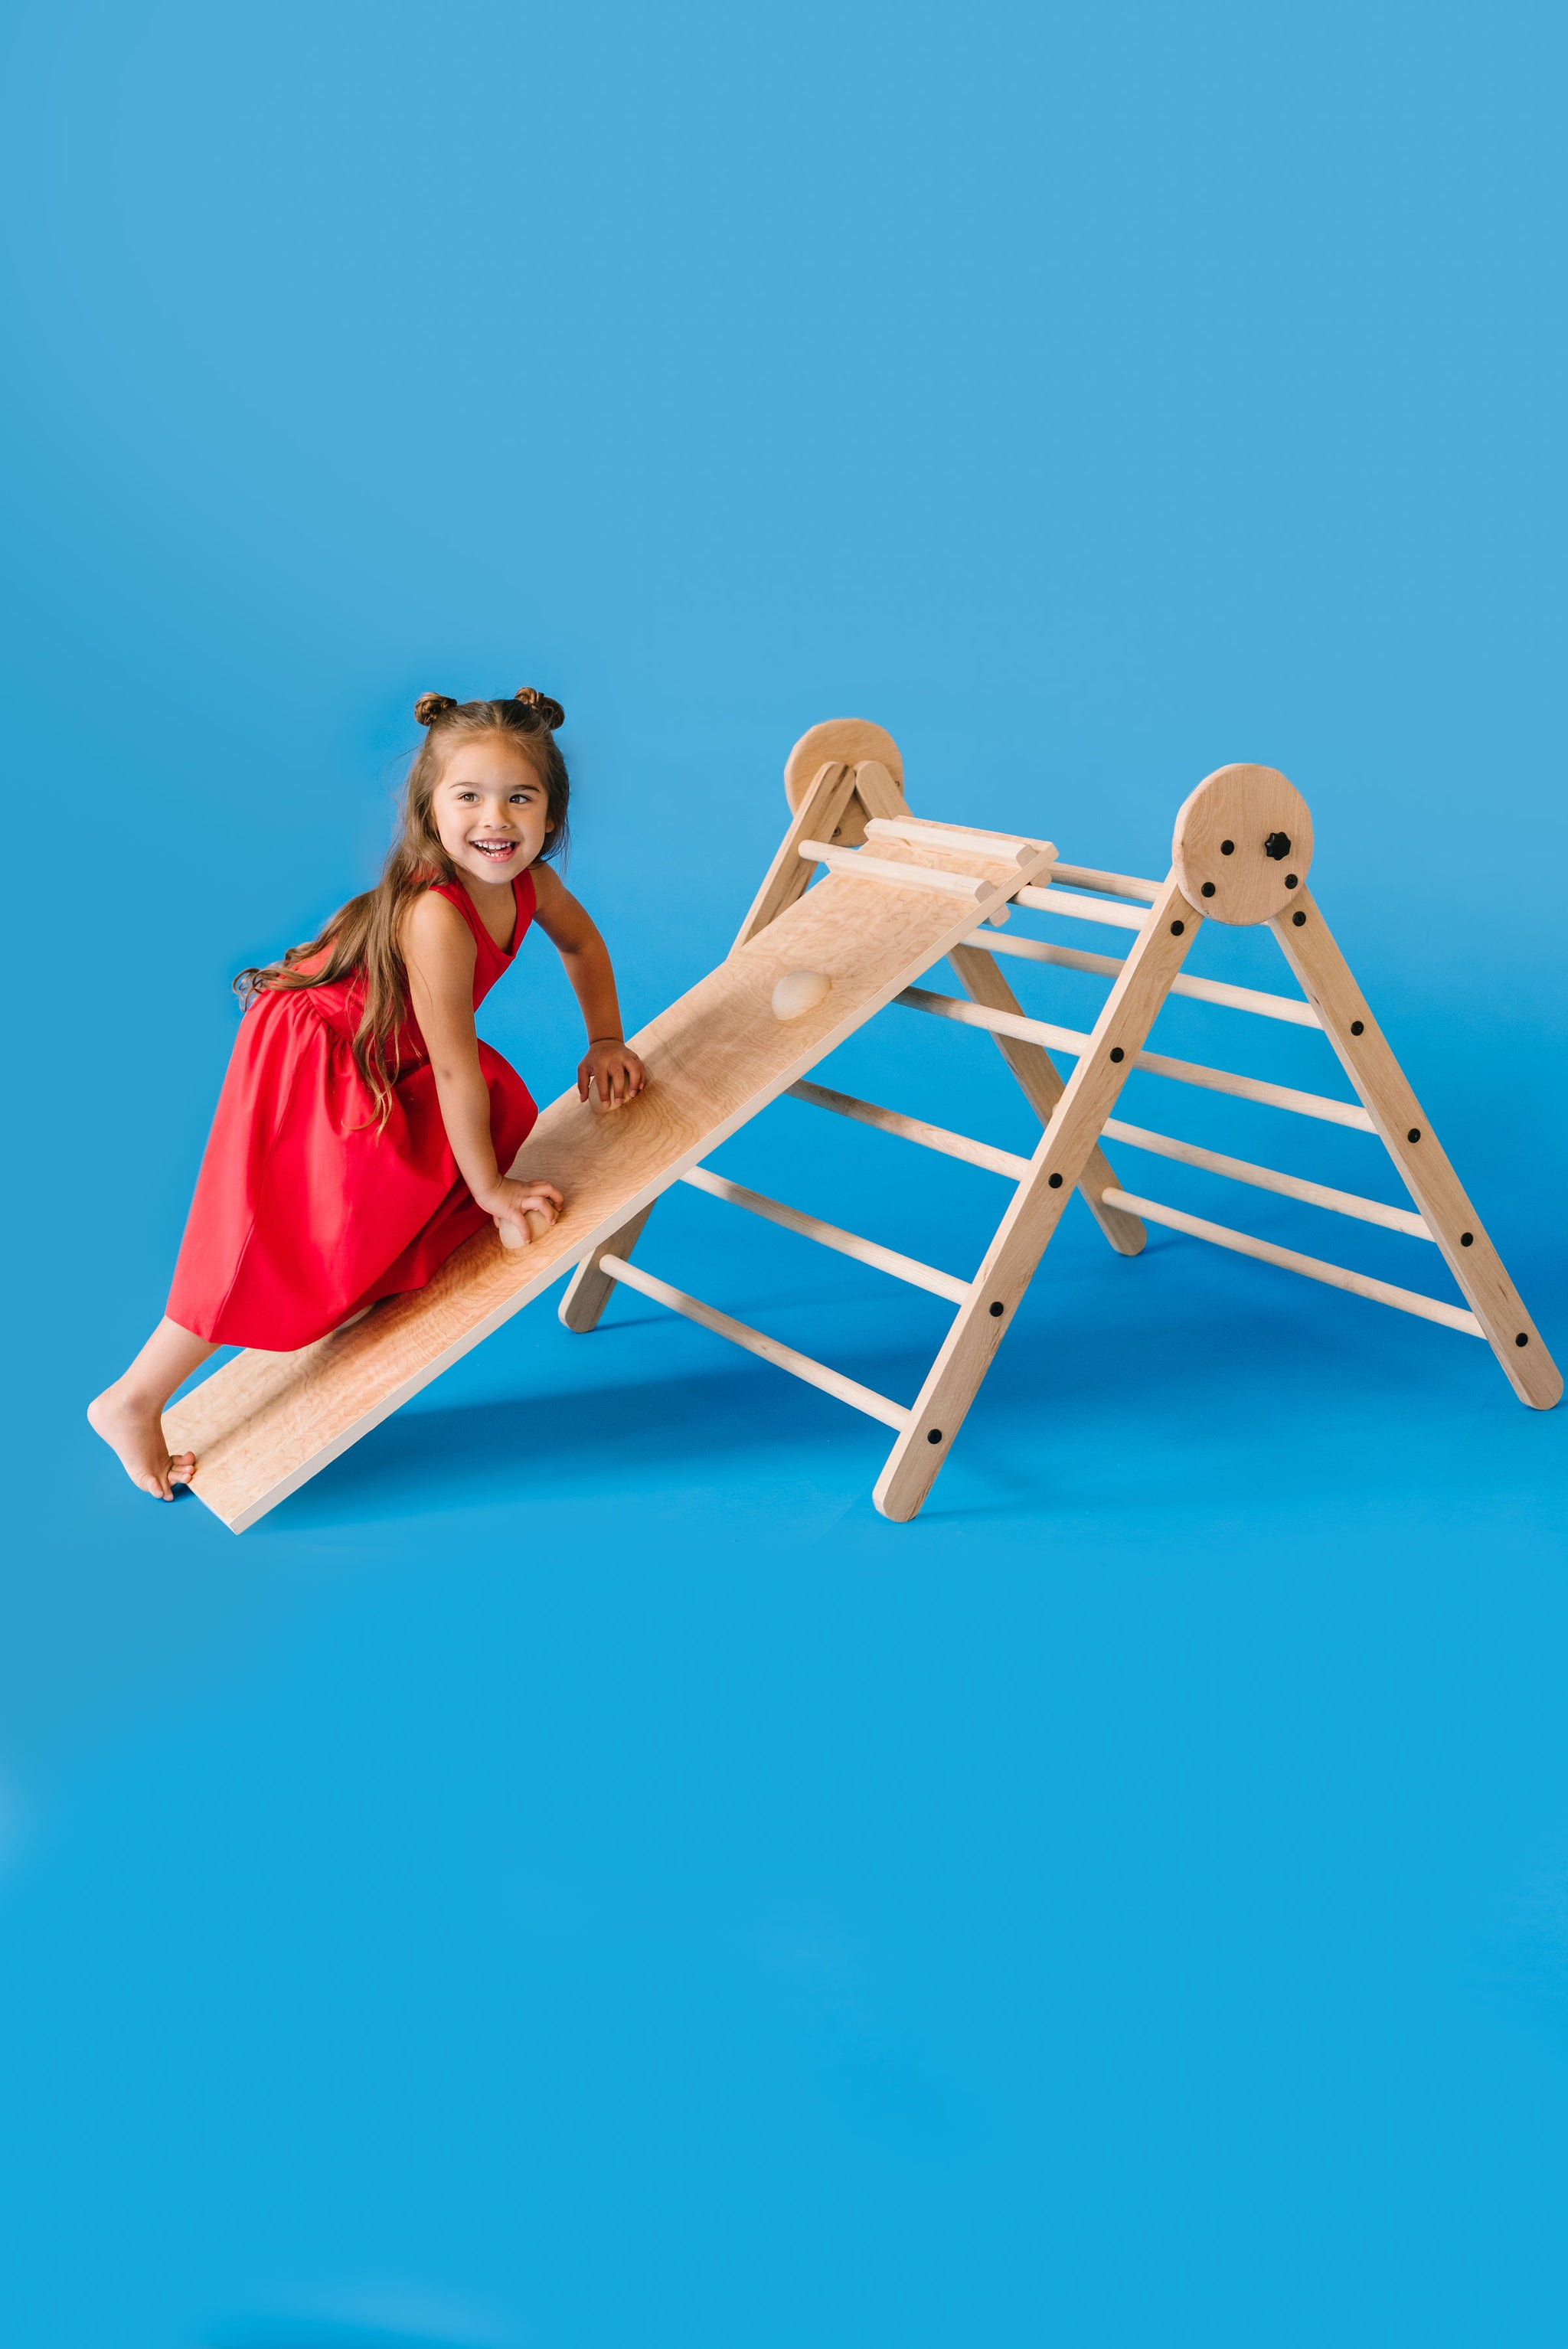 The Folding Pikler with Slide and Climber